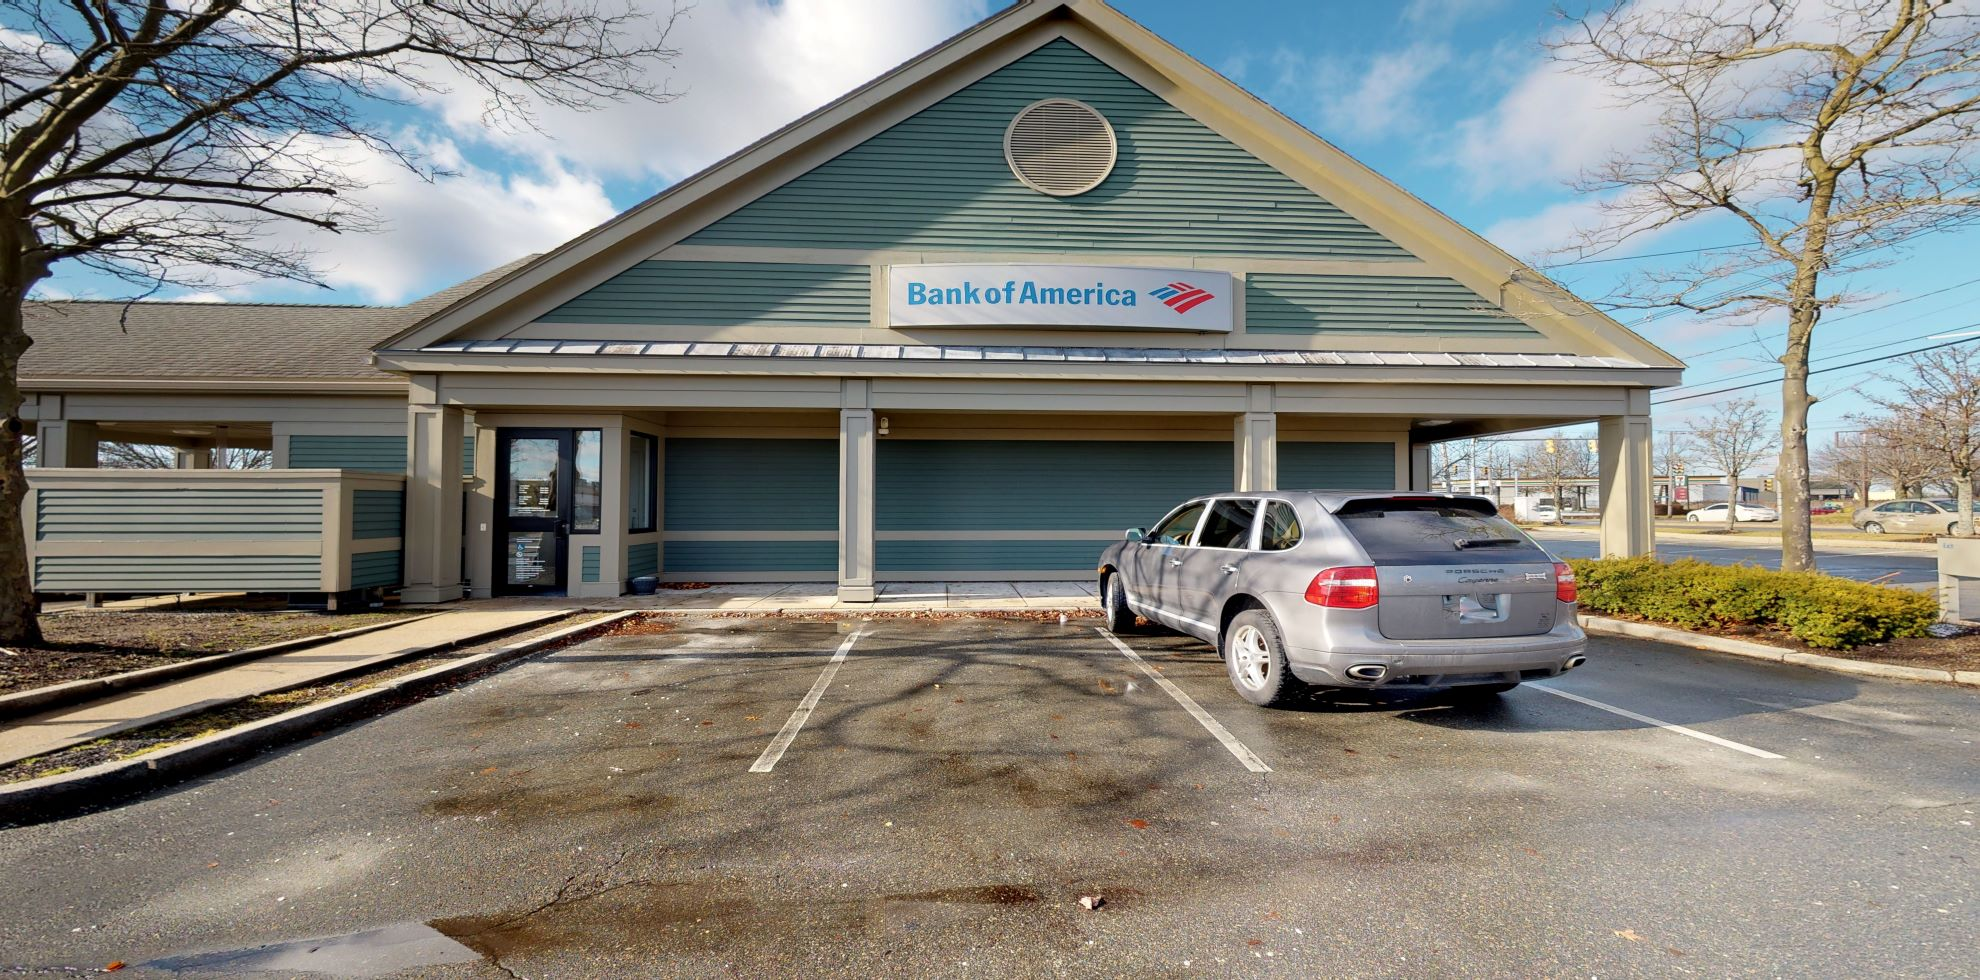 Bank of America financial center with drive-thru ATM and teller   16 Berdon Way, Fairhaven, MA 02719